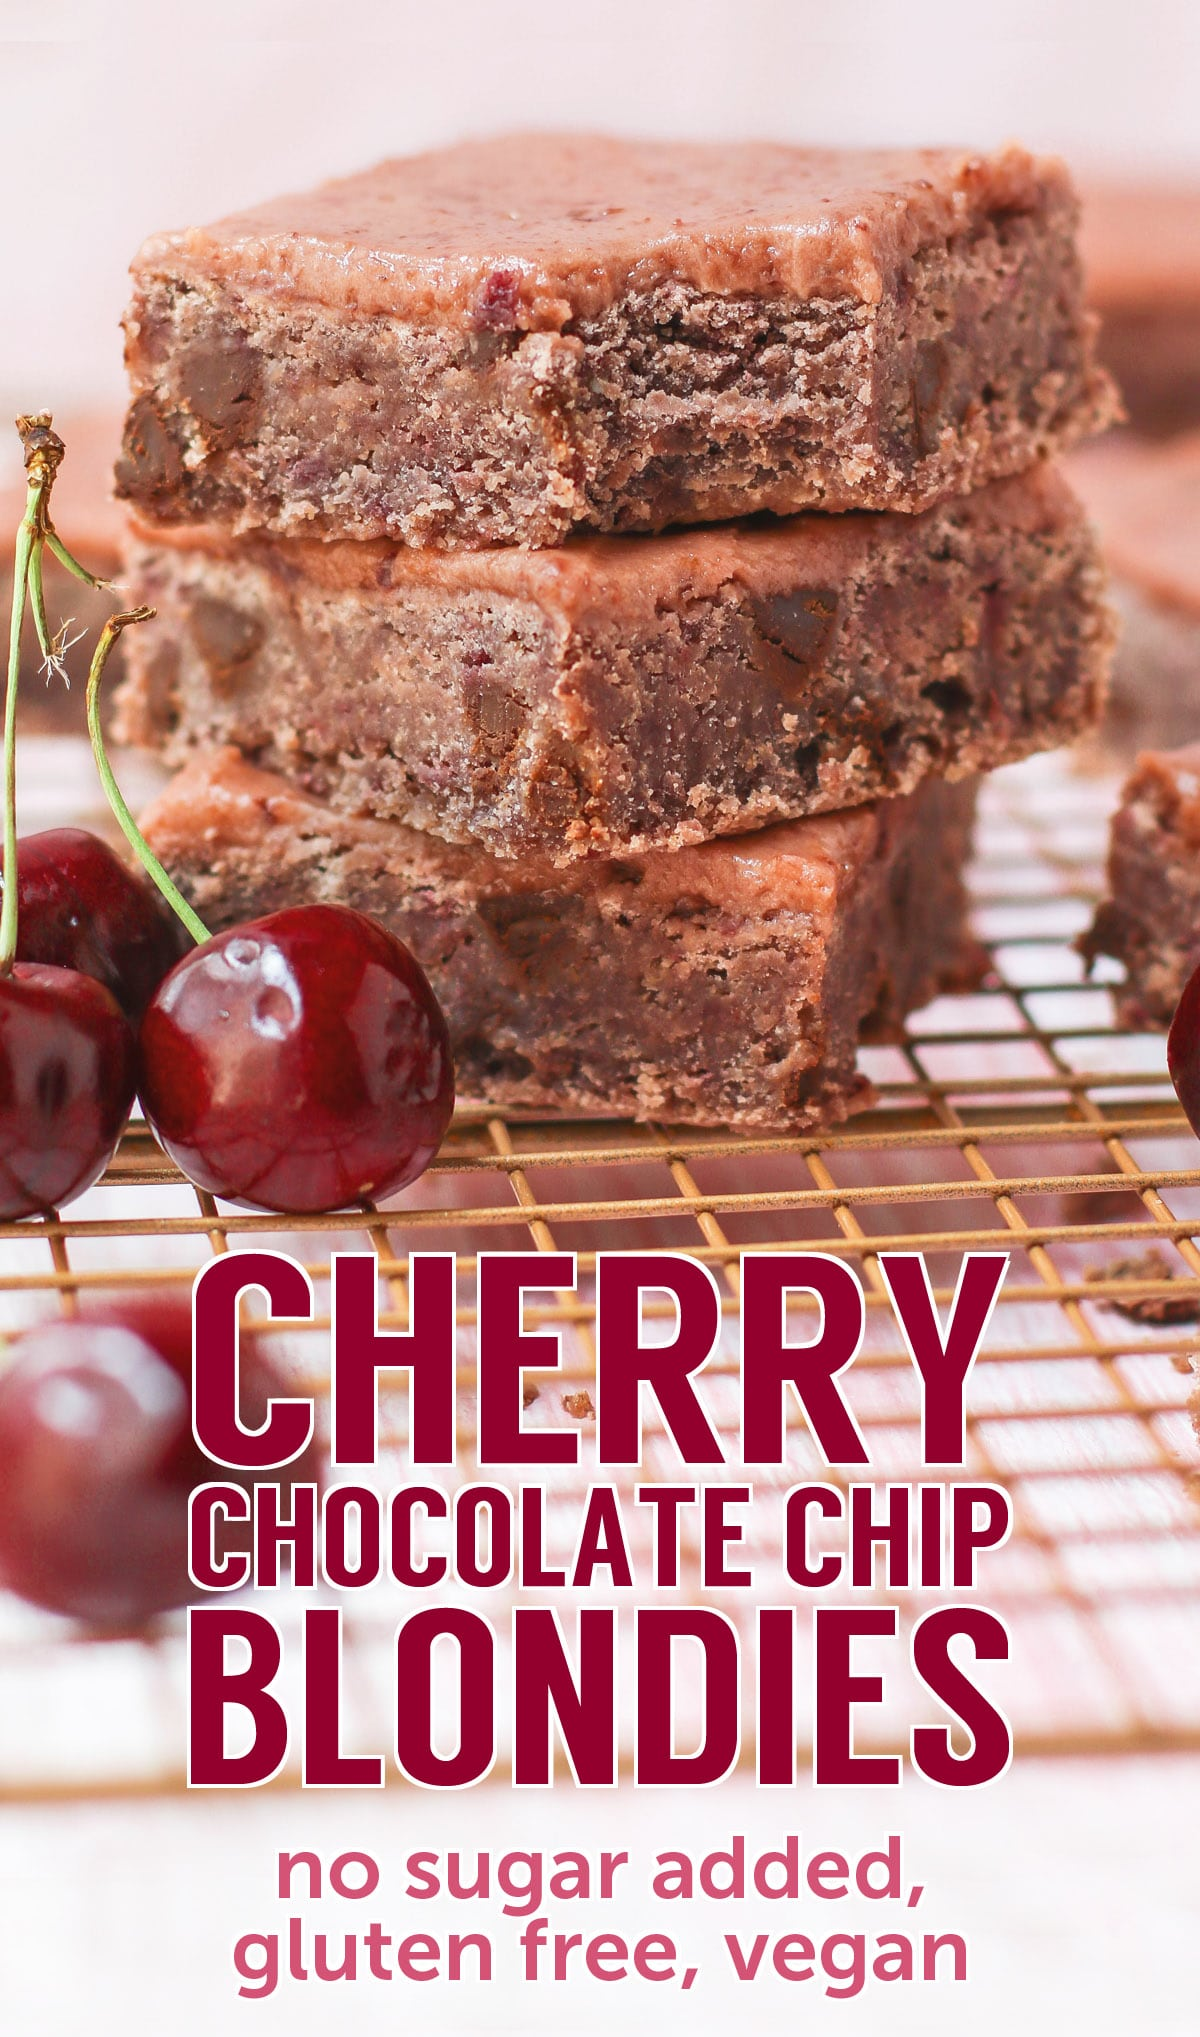 These healthy Cherry Chocolate Chip Blondies are dense, fudgy, and packed with chocolate chips! You'd never know they're made without any added sugar, butter, or flour! Oh yes, these are sugar free, gluten free, dairy free, and vegan.